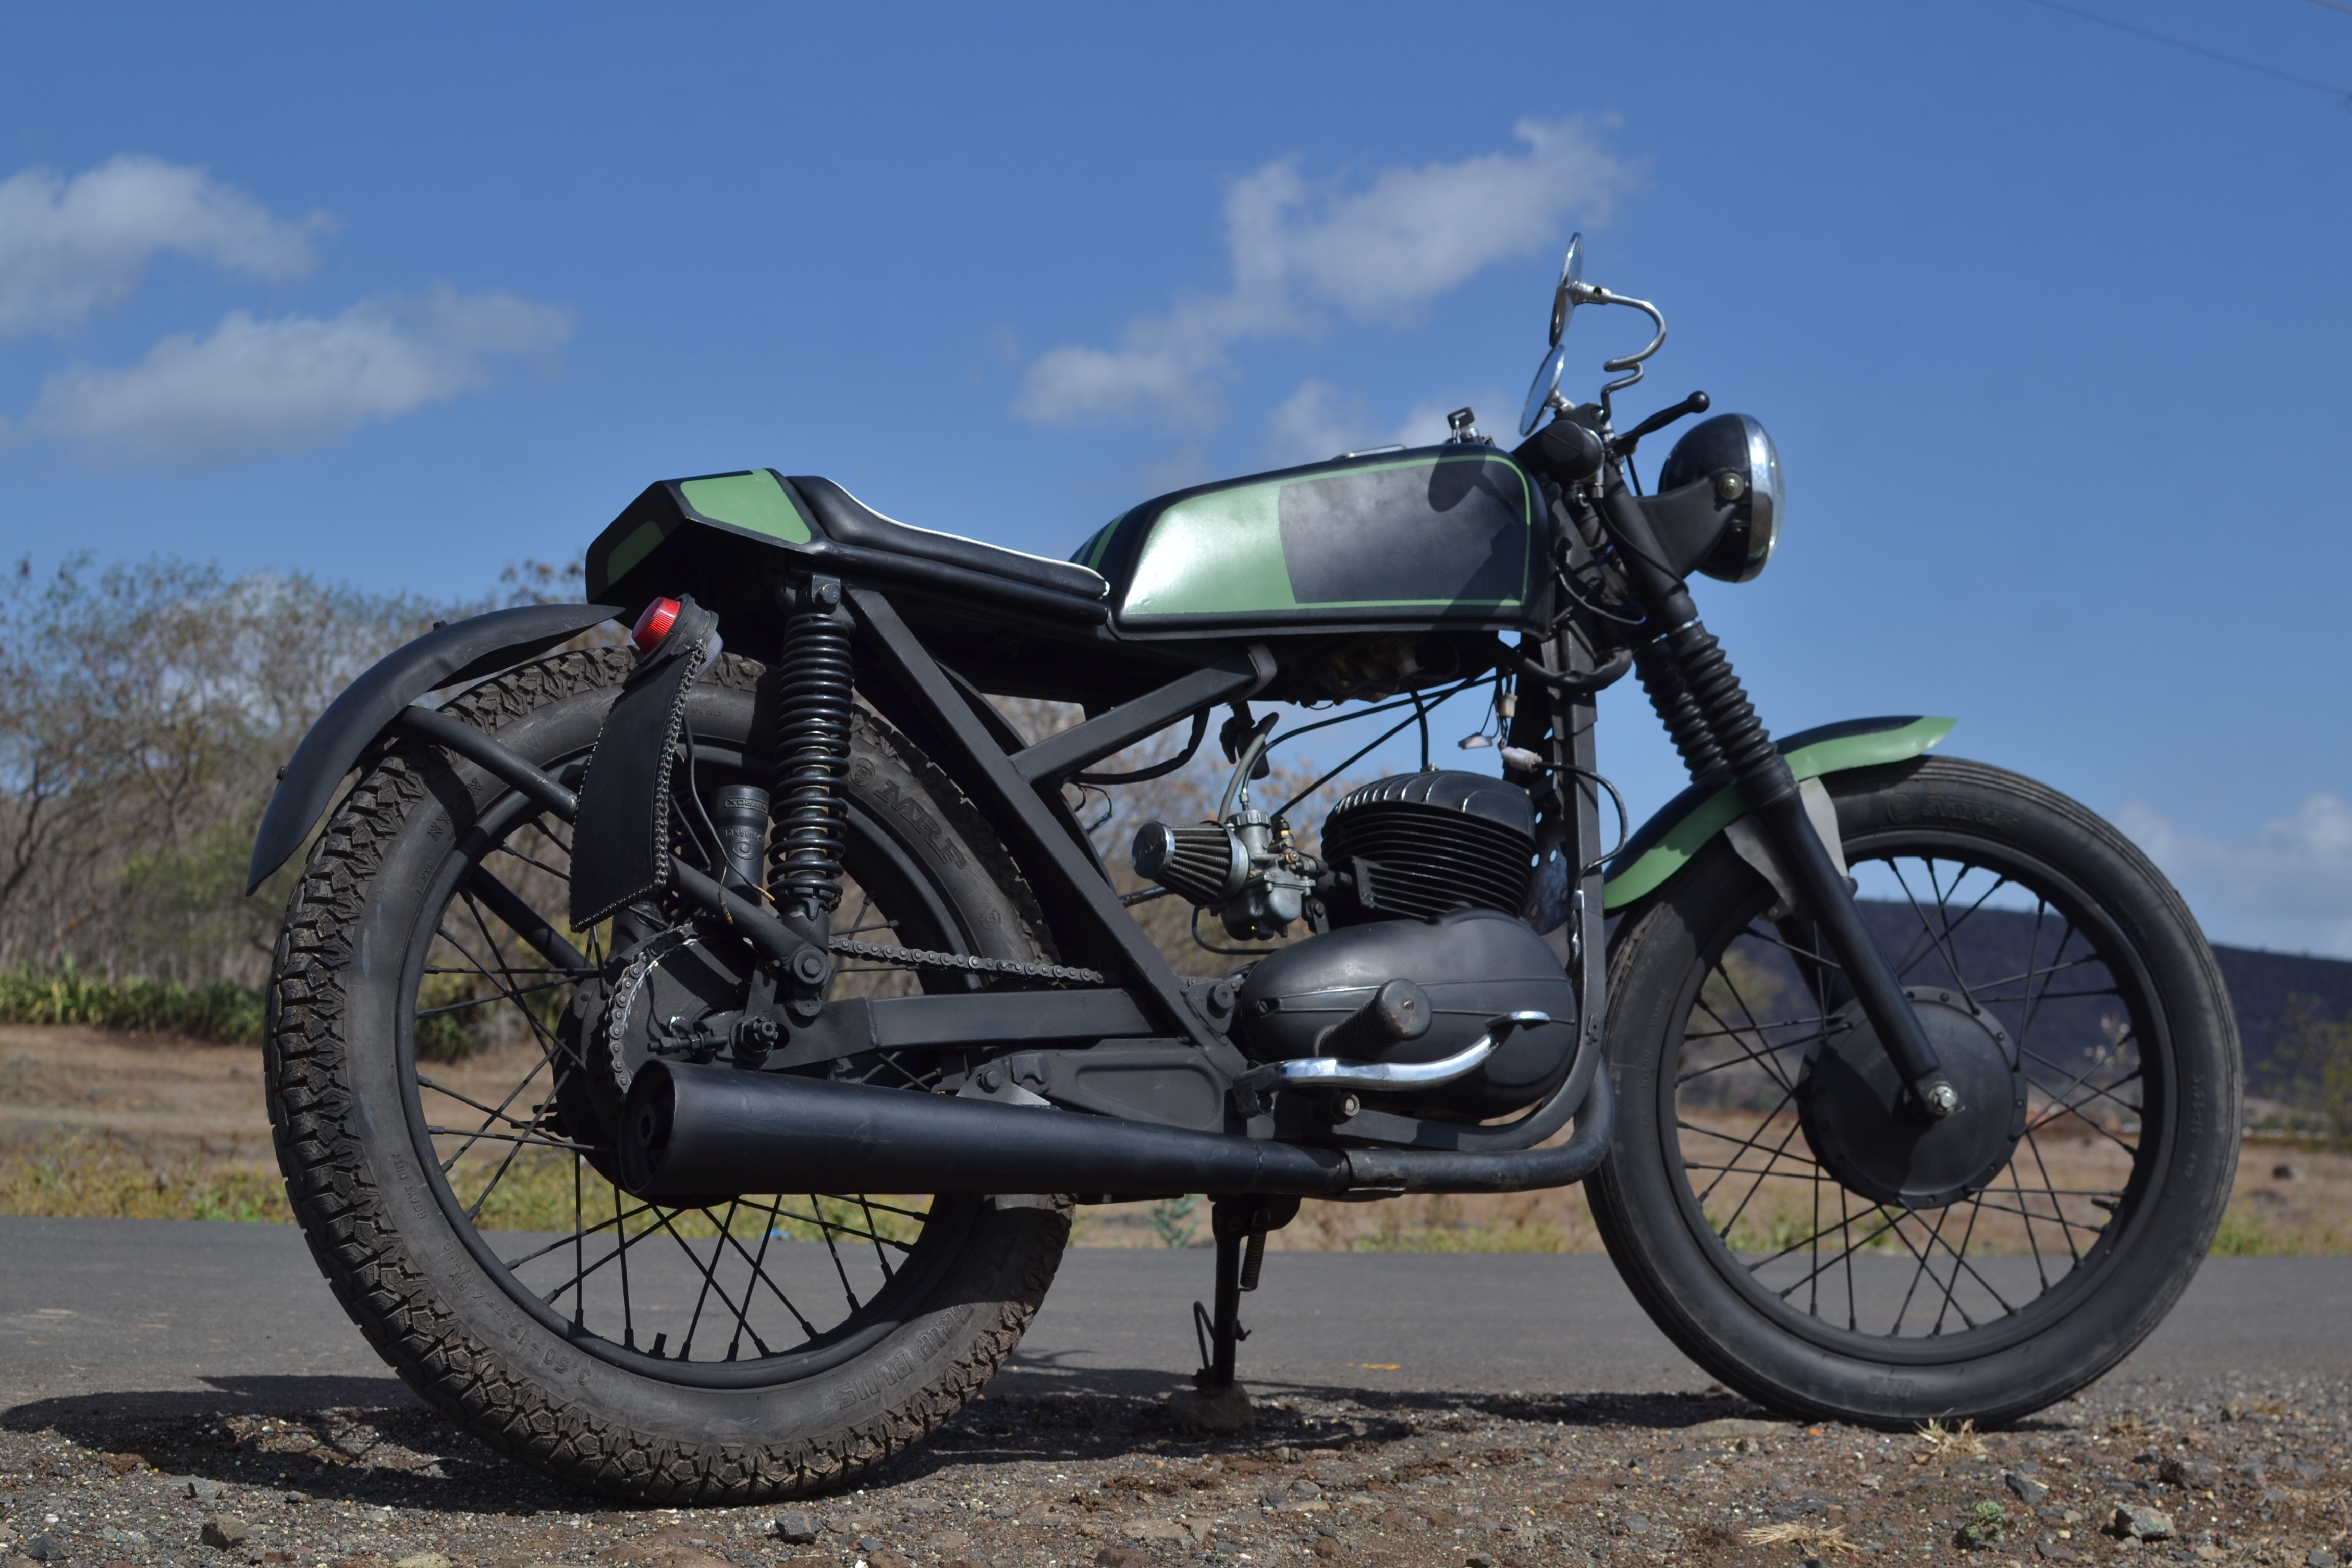 Rajdoot 175 – from OLX to Cafe Racer ~ Art on Vehicles Customs